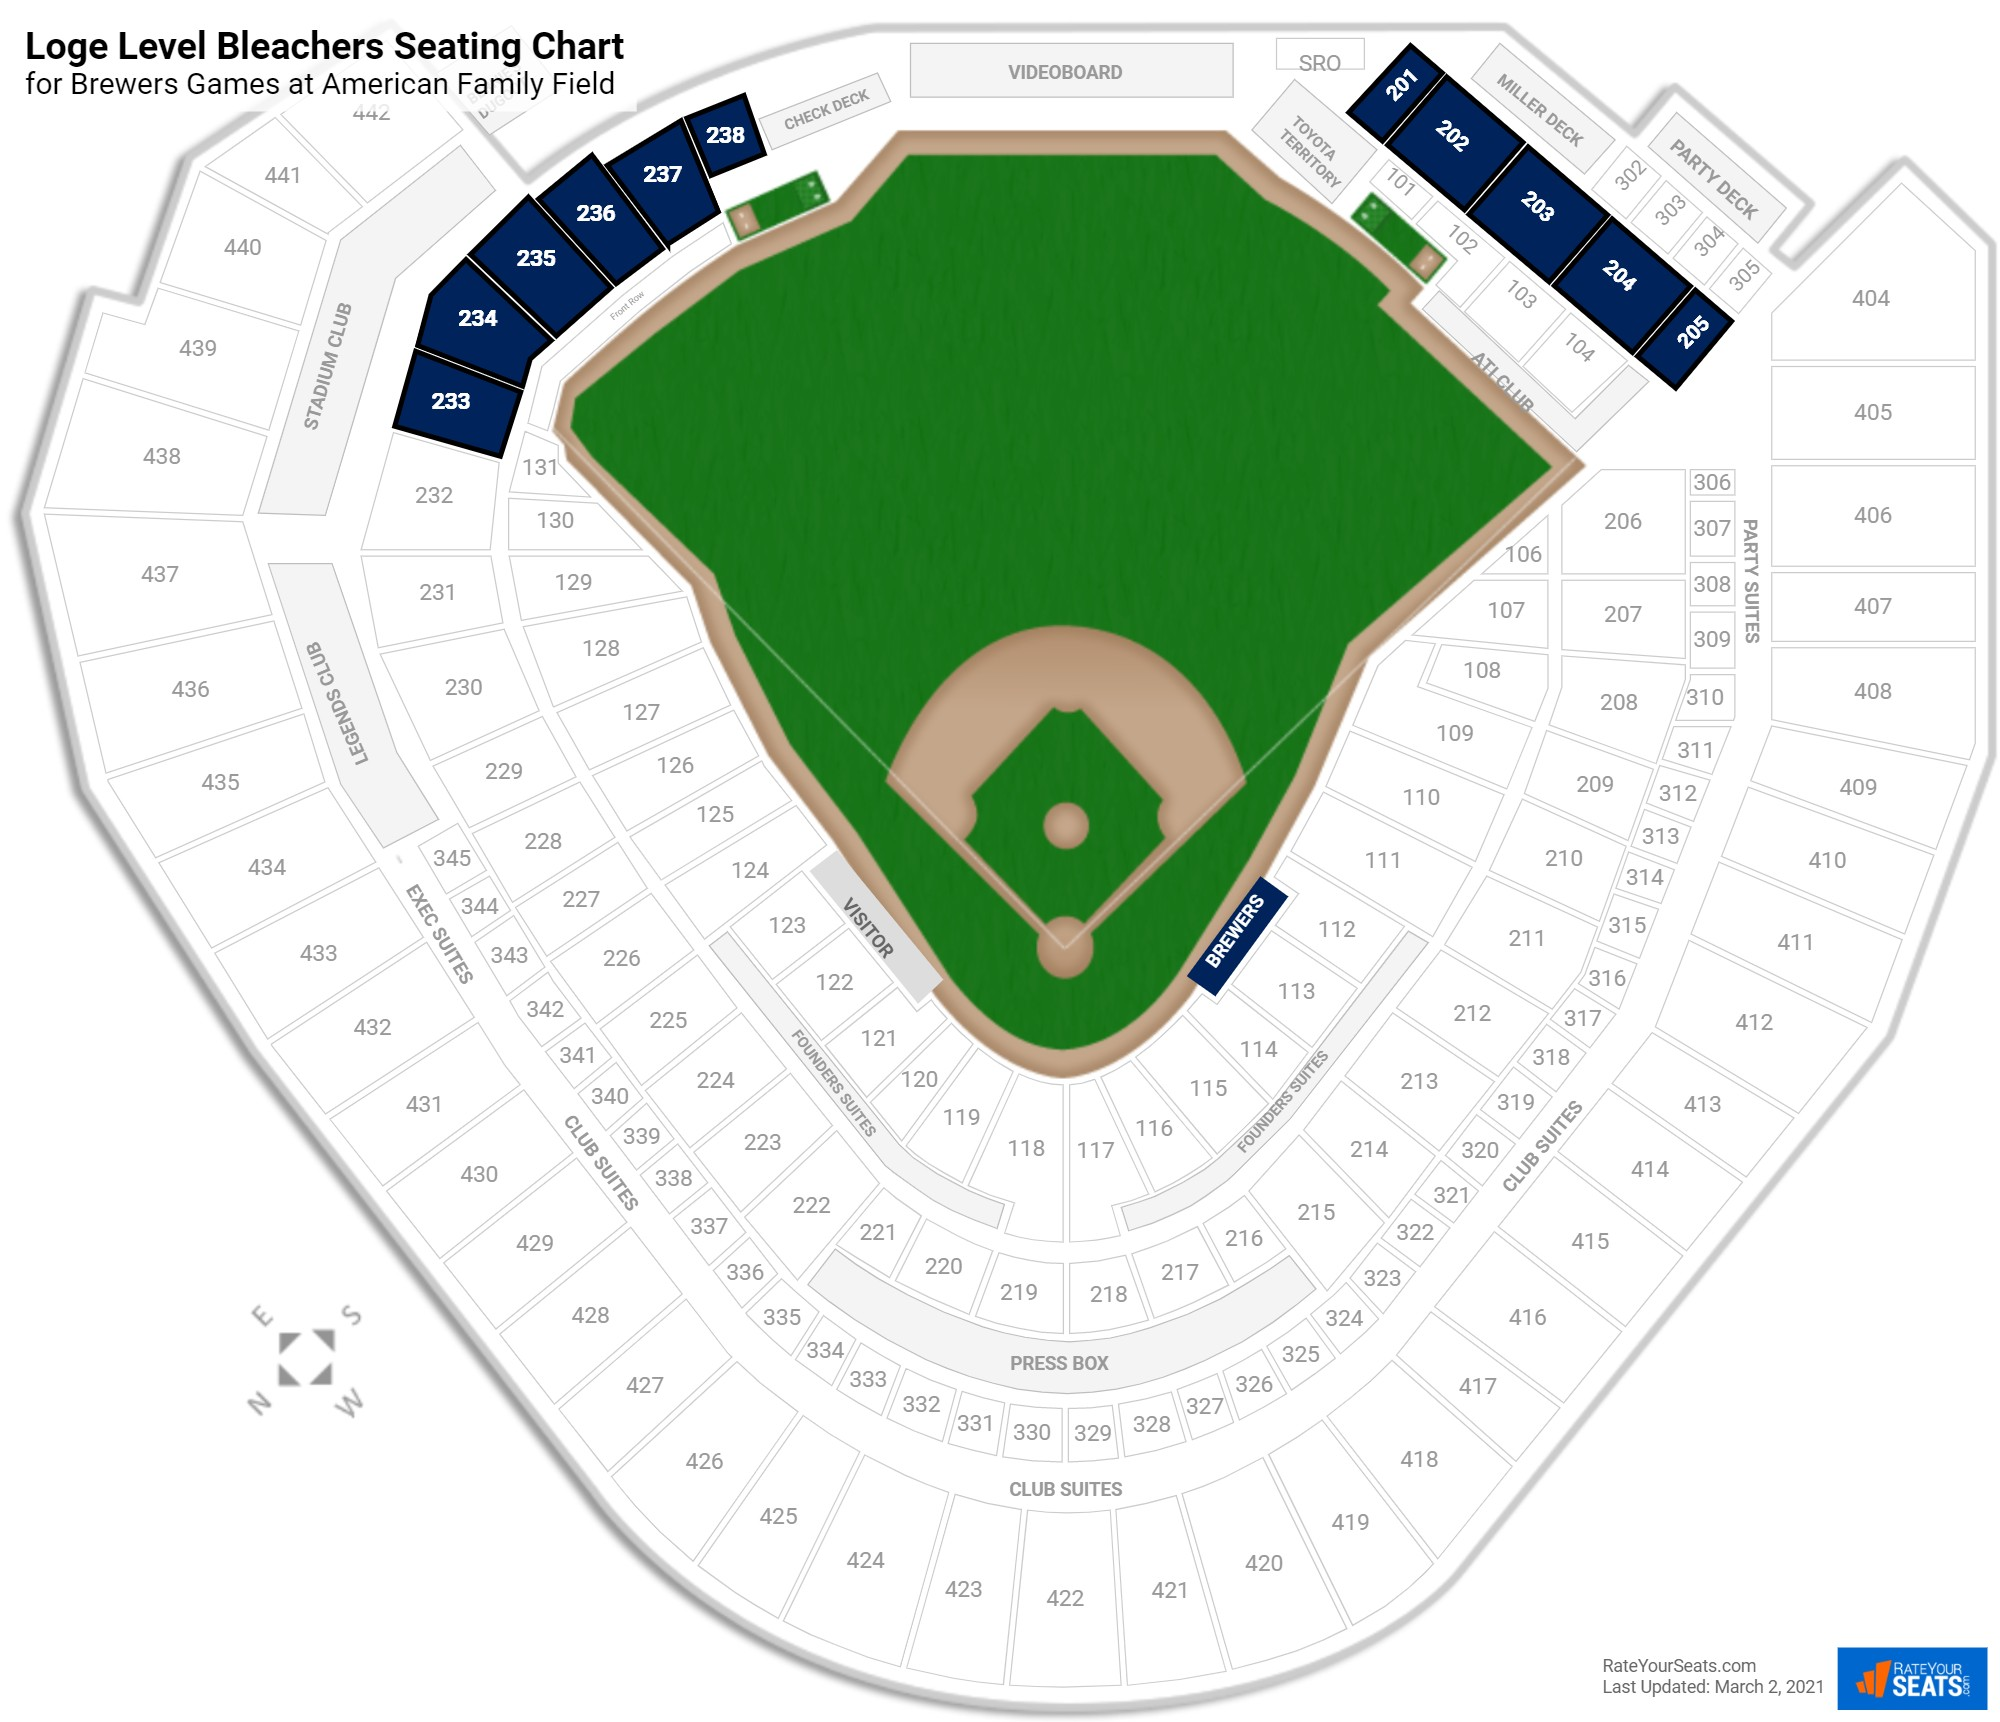 Miller Park Loge Level Bleachers seating chart